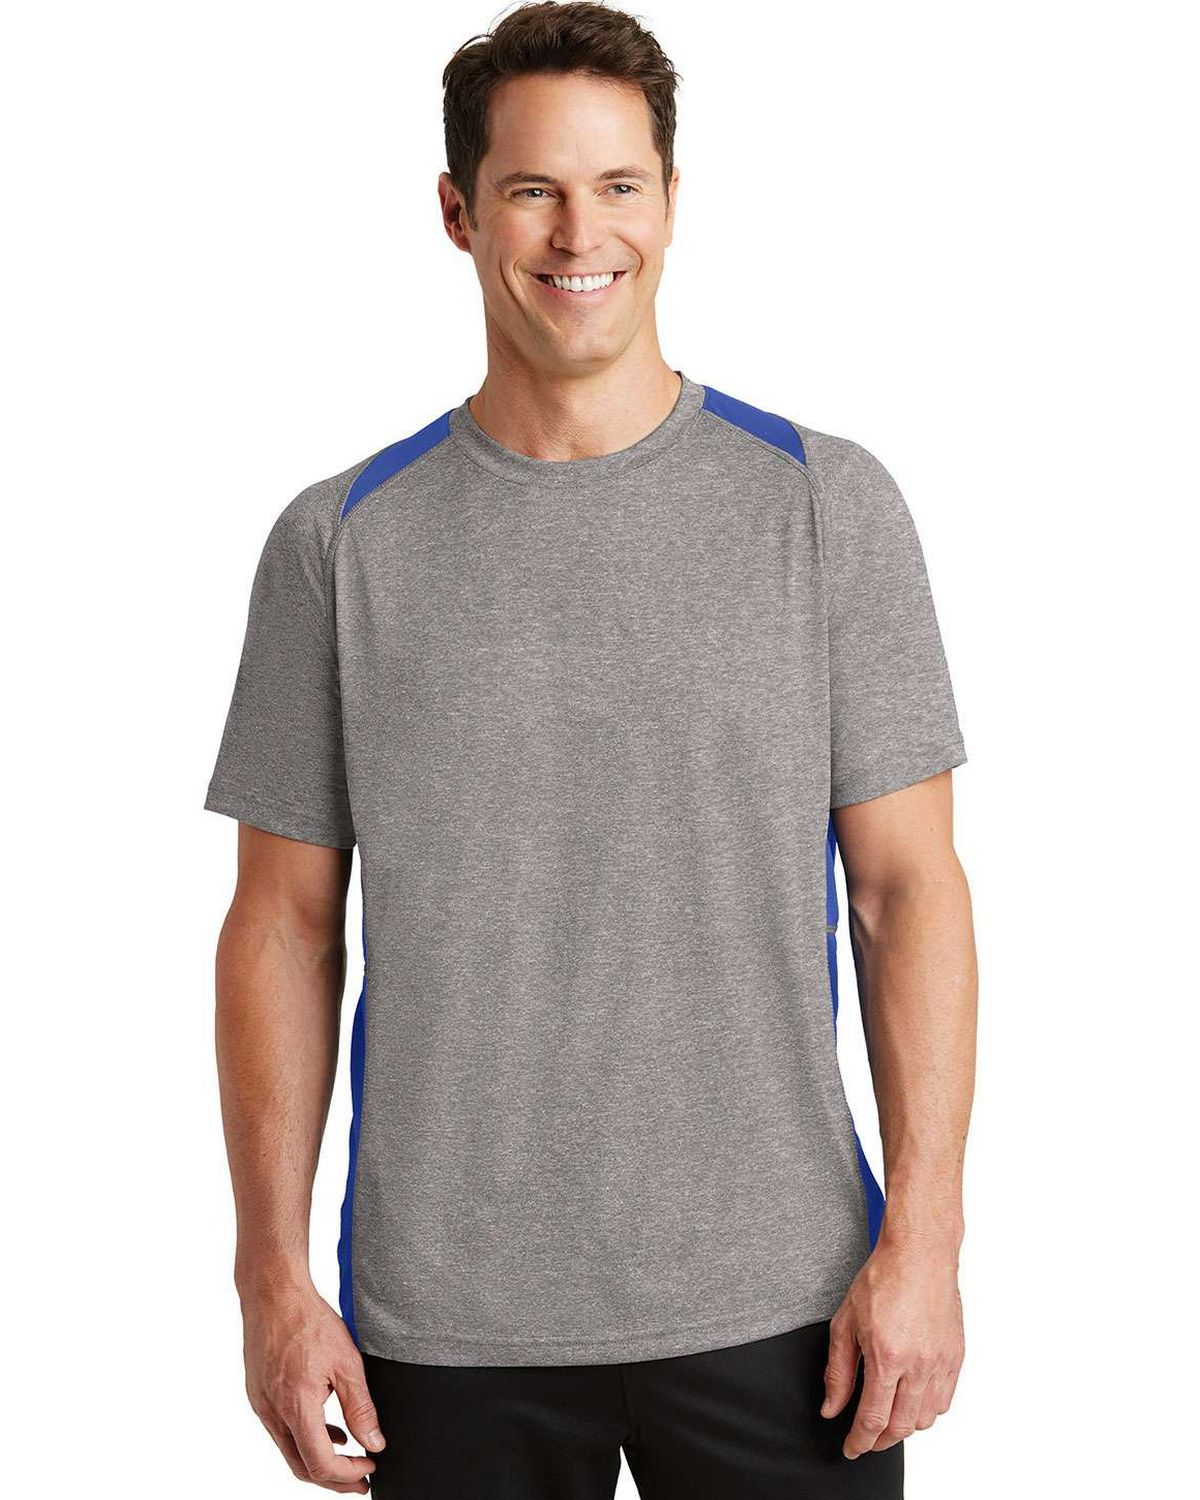 Sport-Tek ST361 Heather Colorblock Contender Tee - Vintage Heather/True Royal - XS ST361